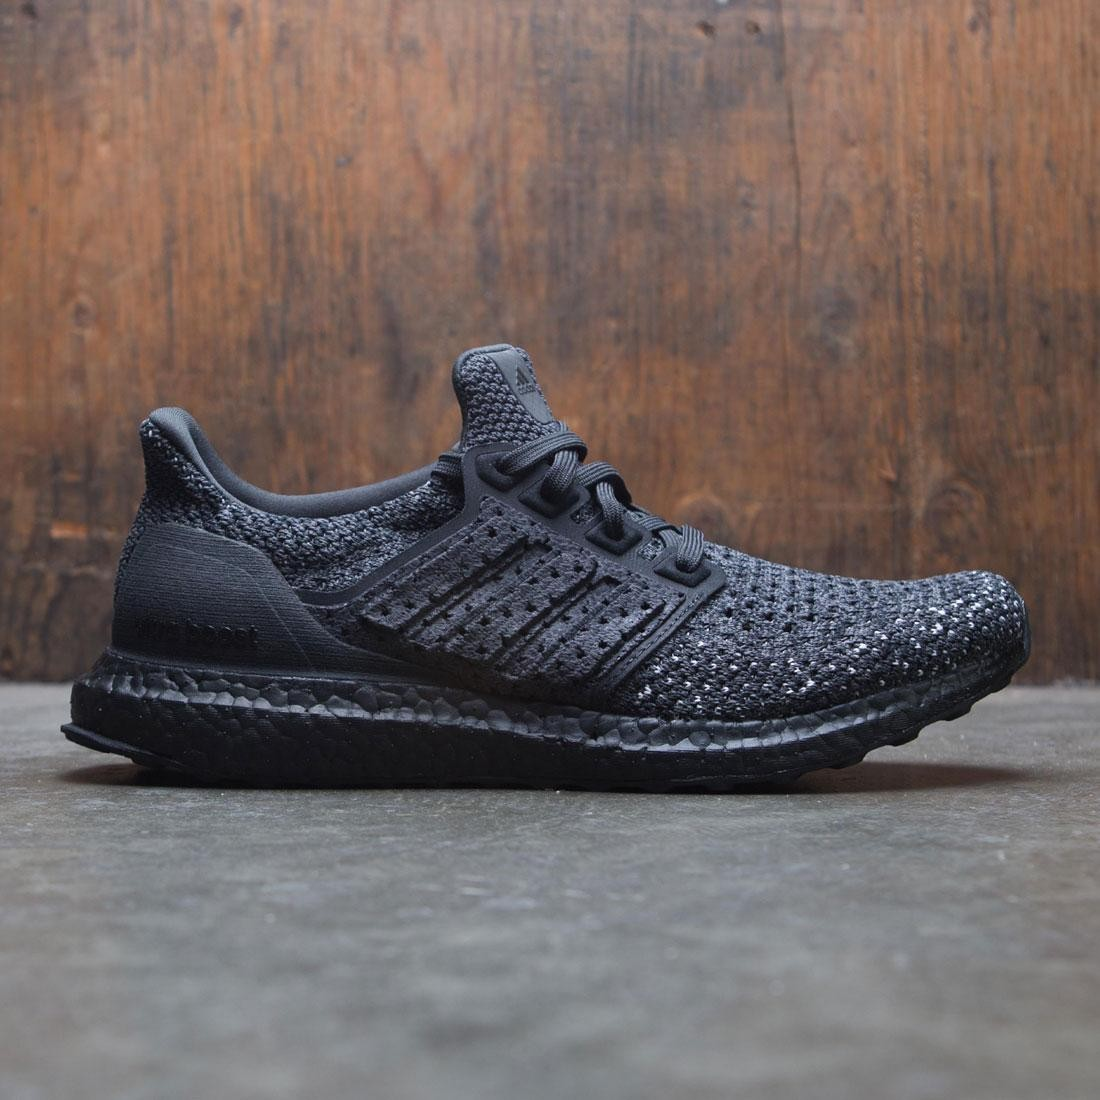 a409857c6db Adidas Men UltraBOOST Clima black carbon orchid tint